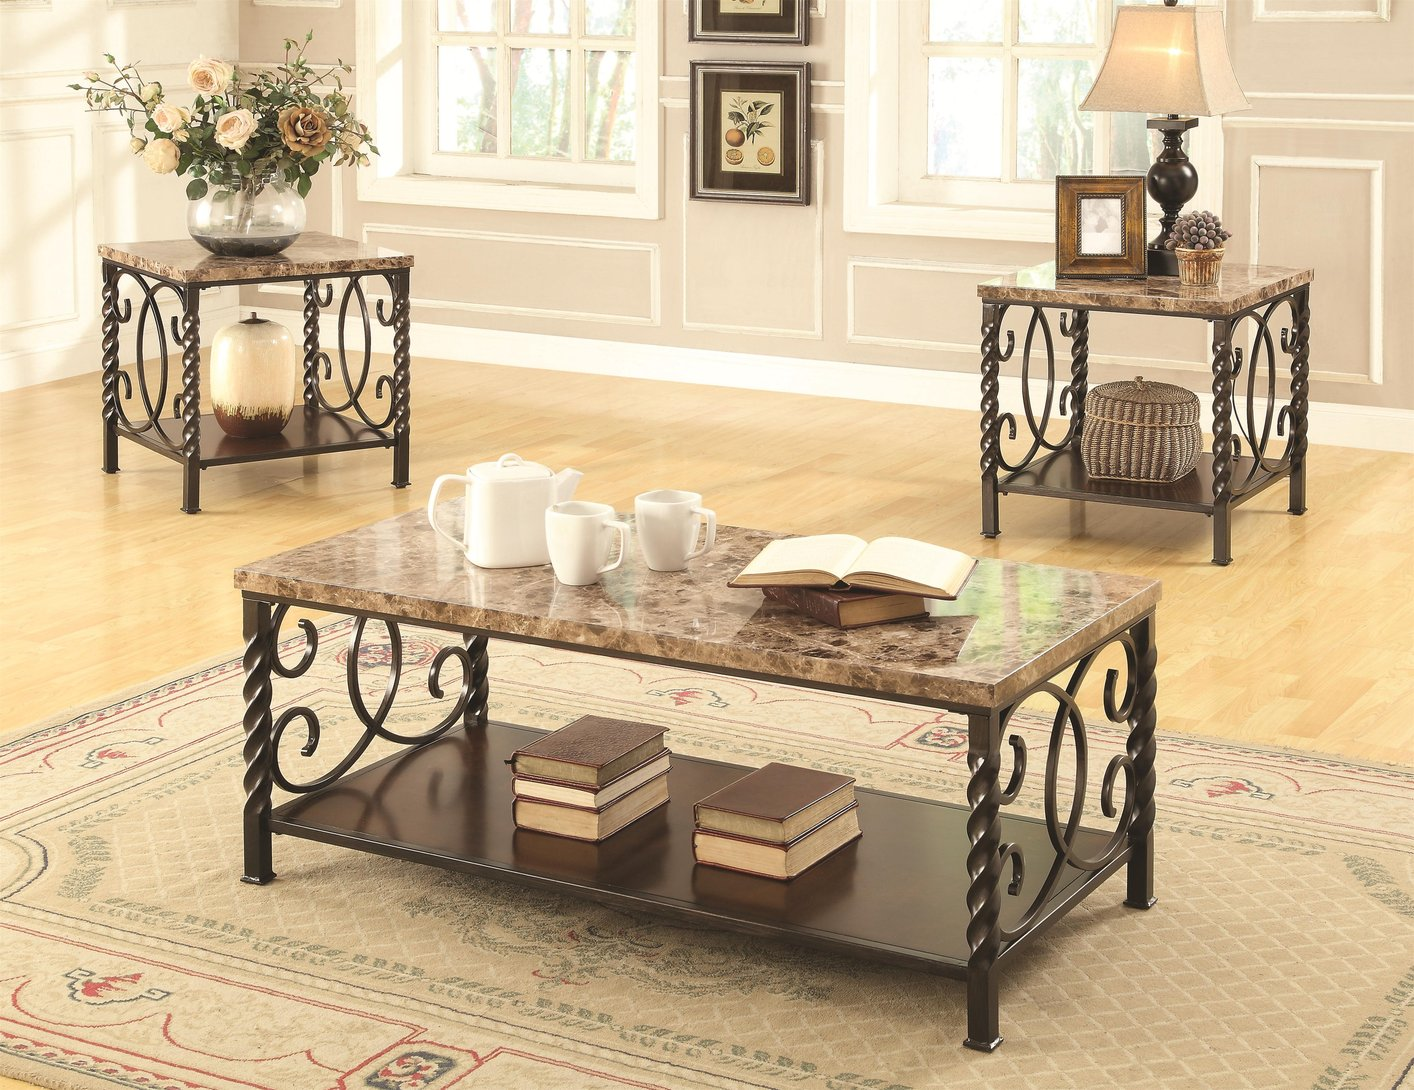 Ordinaire Lockhart Beige Metal Coffee Table Set